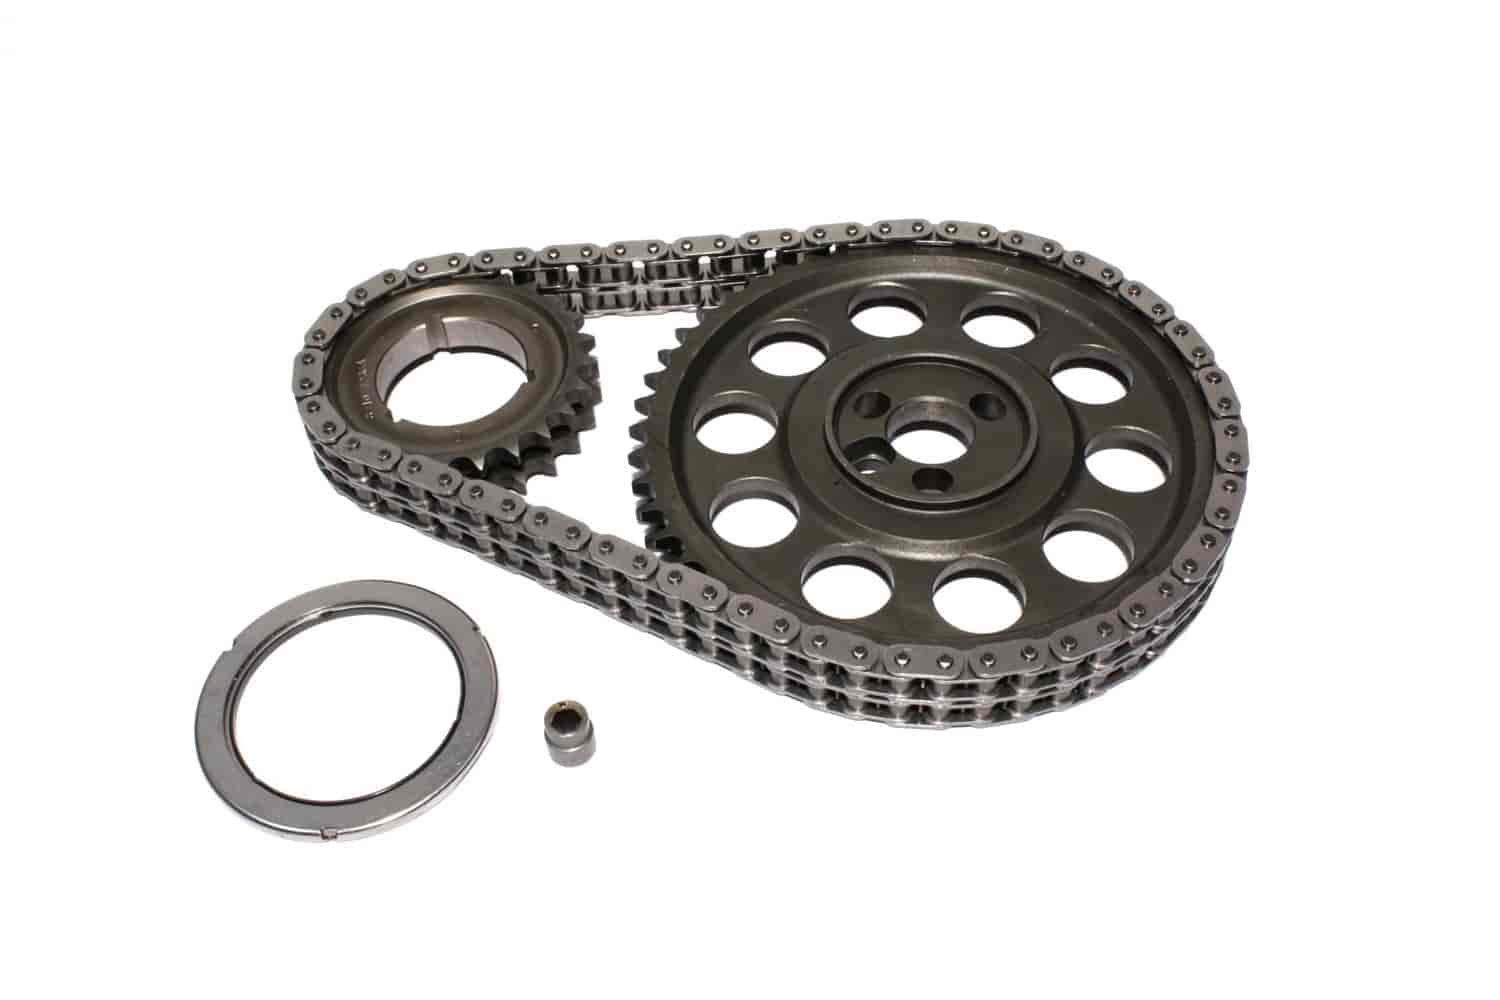 Competition Cams 3100 Hi-TechRoller Race Timing Set for Small Block Chevrolet